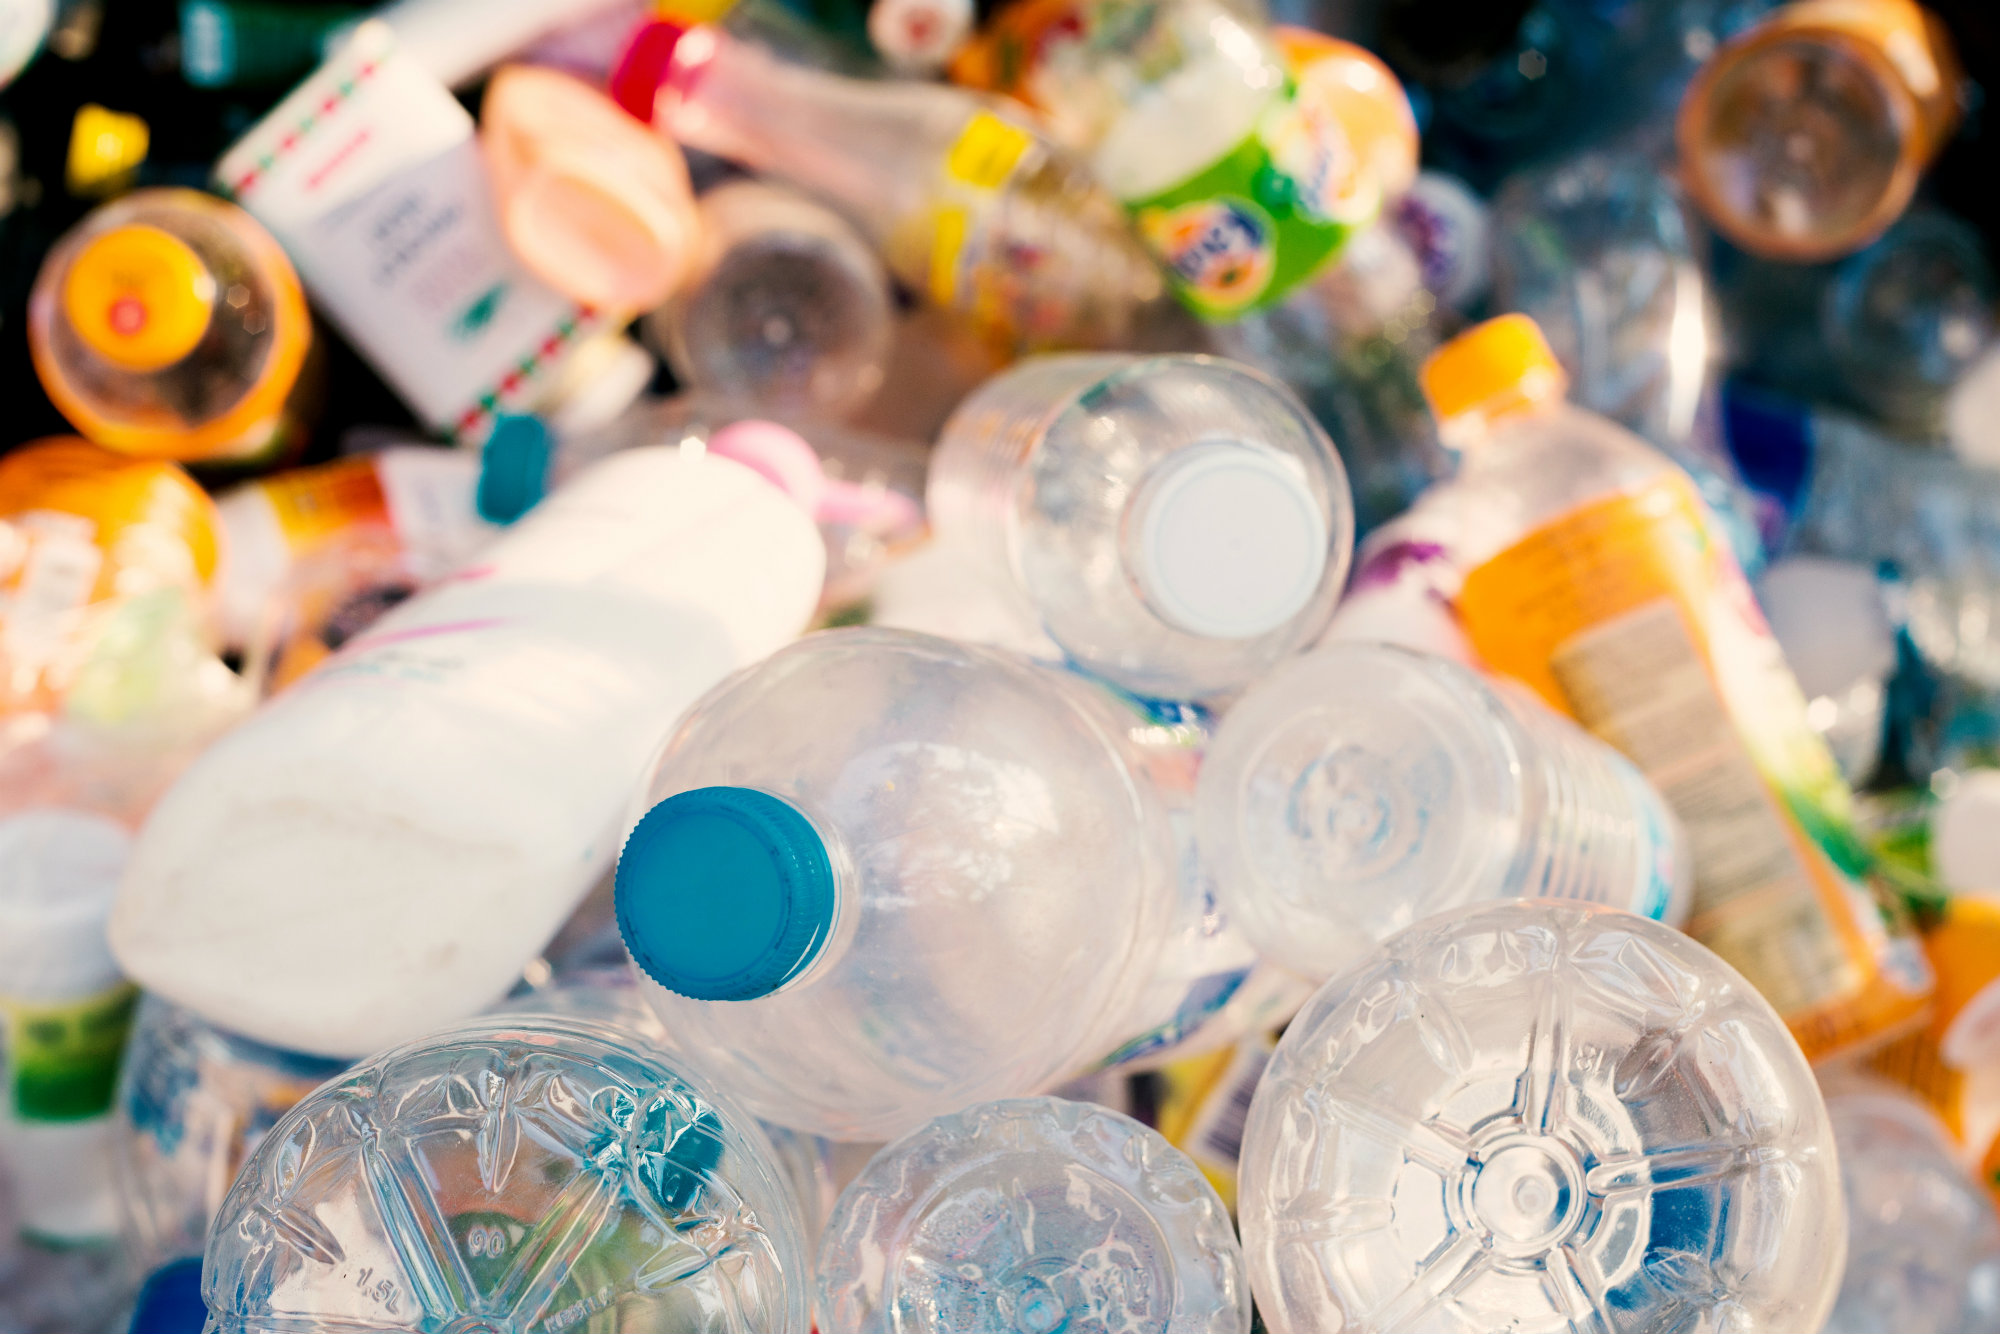 Waste Plastic In Concrete Could Support Sustainable